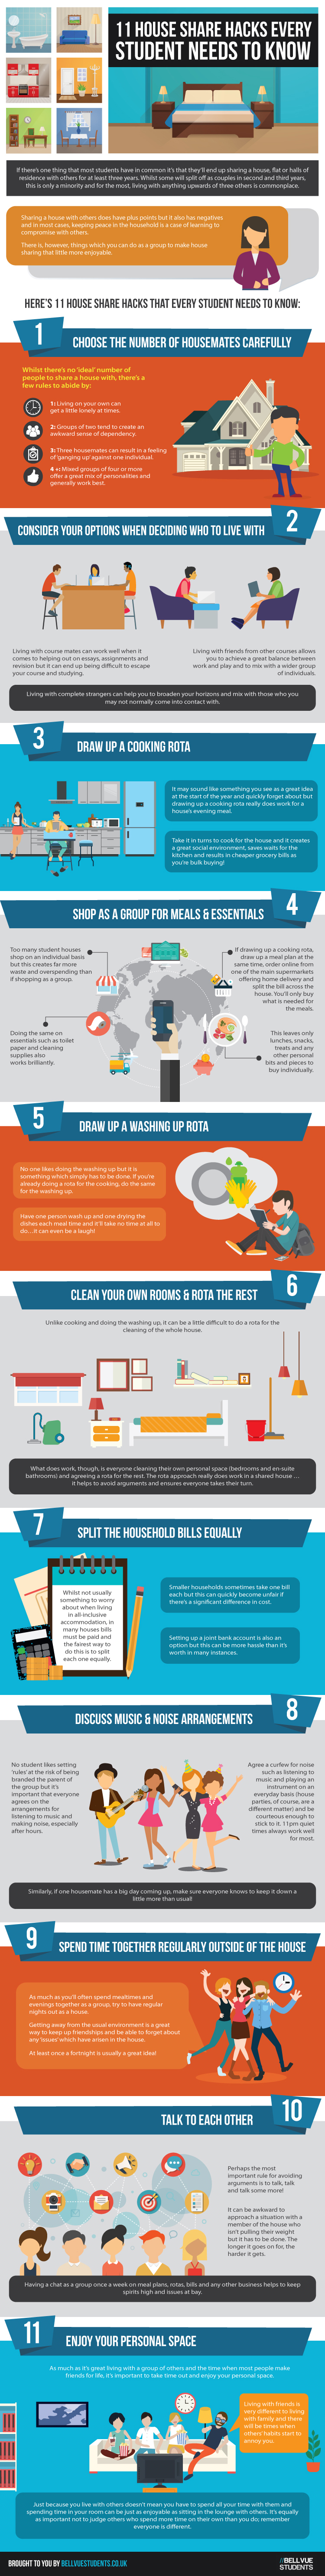 11 House Share Hacks Every Student Needs To Know